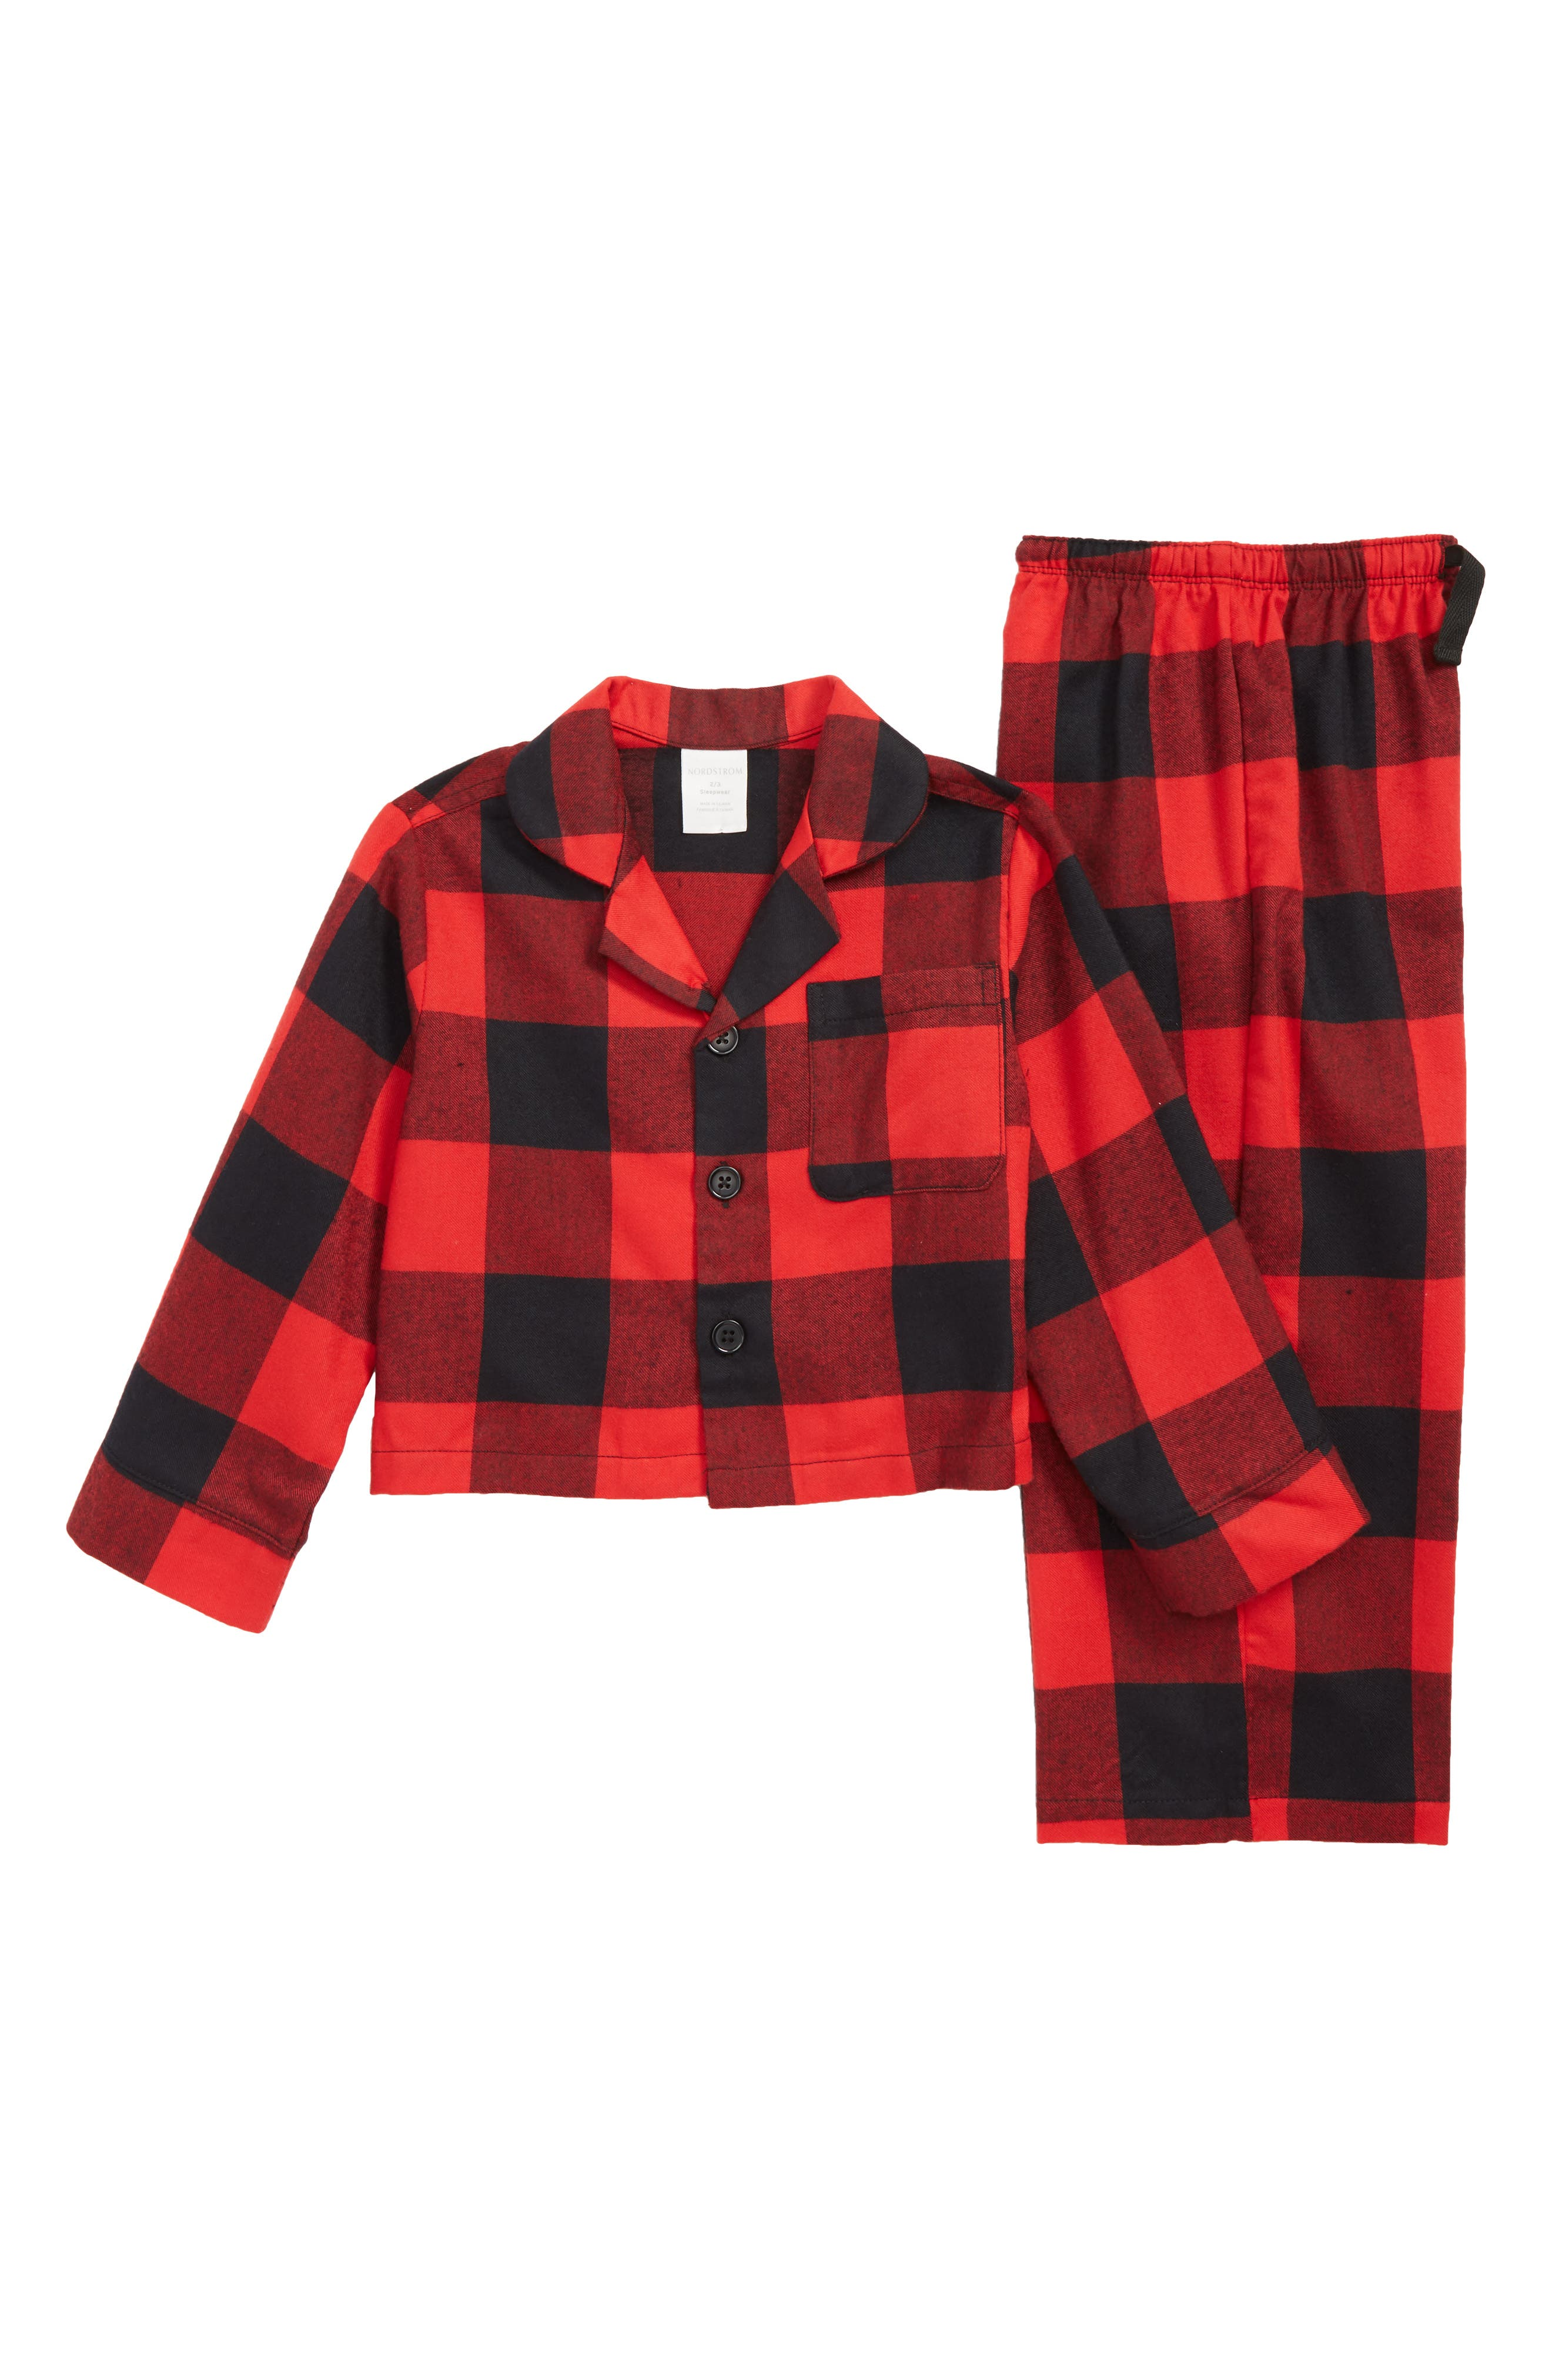 Toddler Nordstrom Flannel Pajamas Size 4  Red